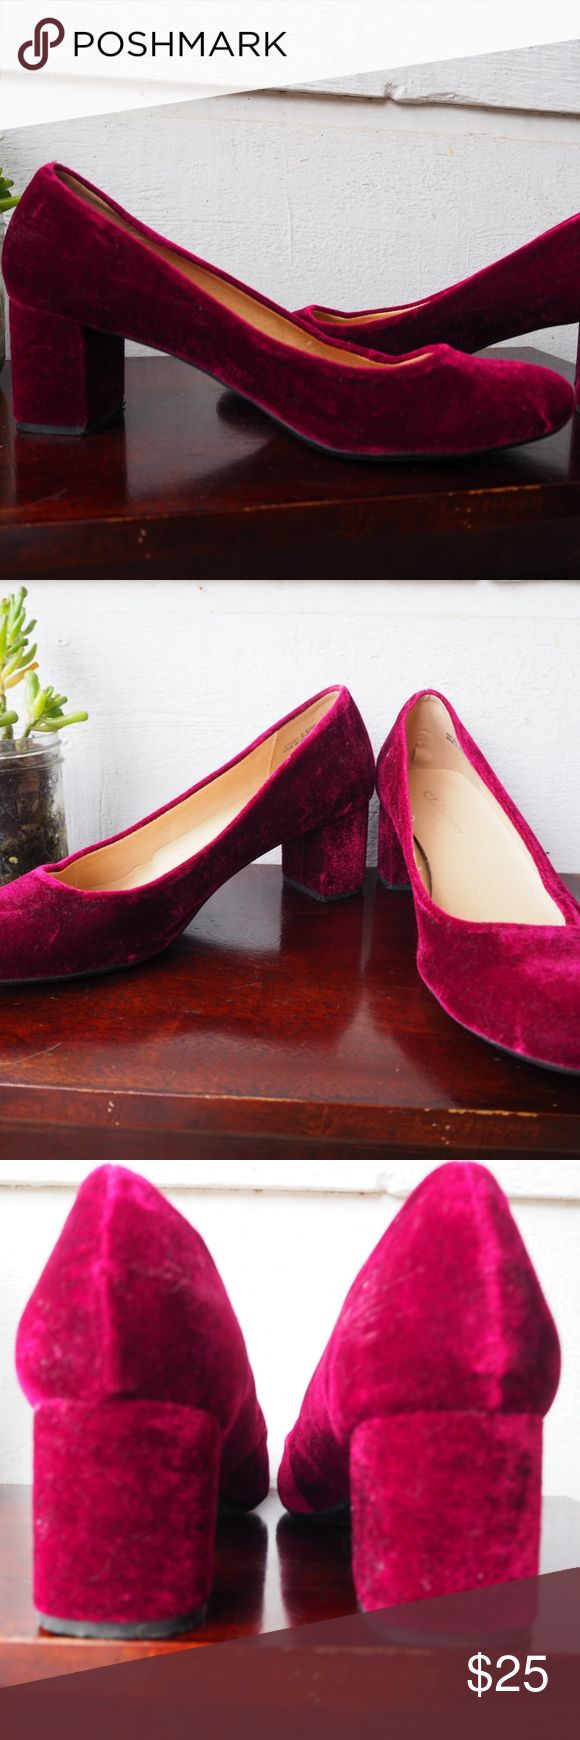 Maroon Velvet Chunky Heels! Only worn once! Cl by Laundry hills, in great condition!   All reason offers welcomed! Chinese Laundry Shoes Heels